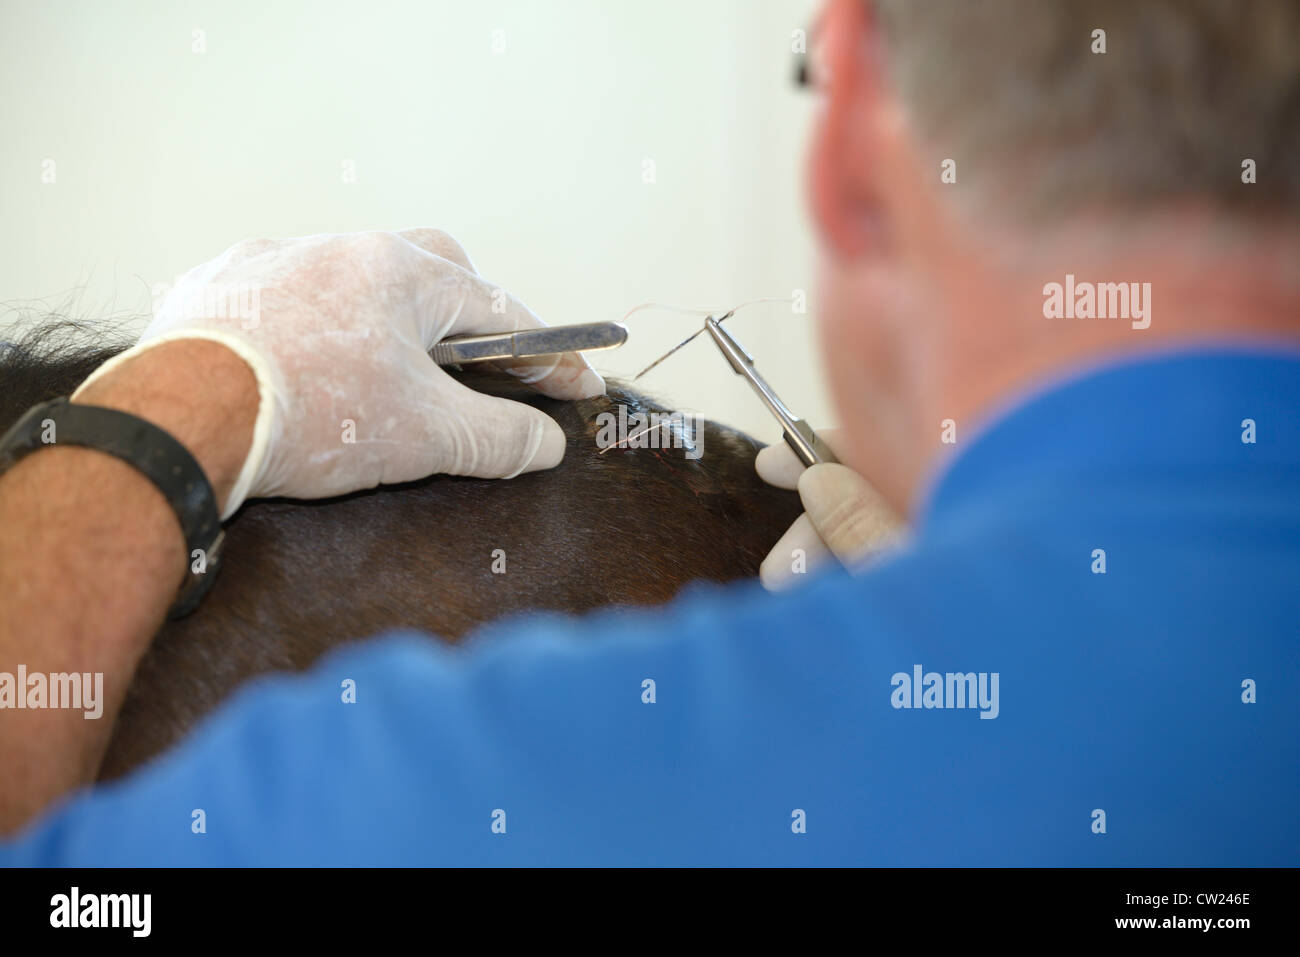 Horse veterinarian stitching a deep cut on the withers of a bay thoroughbred horse - Stock Image